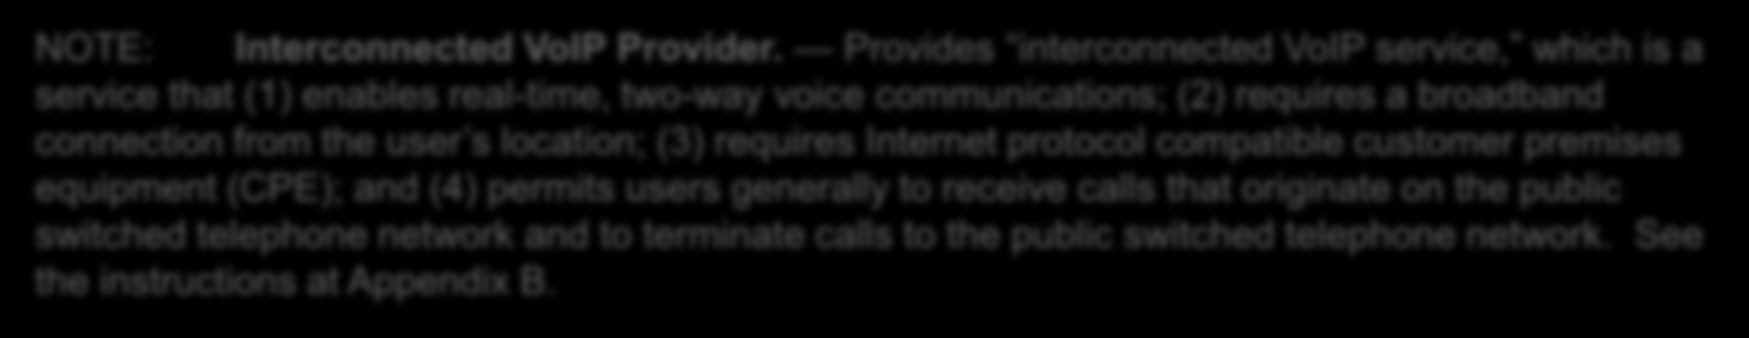 Non-Interconnected VoIP For Purposes of TRS Contribution Purposes All providers of non-interconnected VoIP service (as defined in section 64.